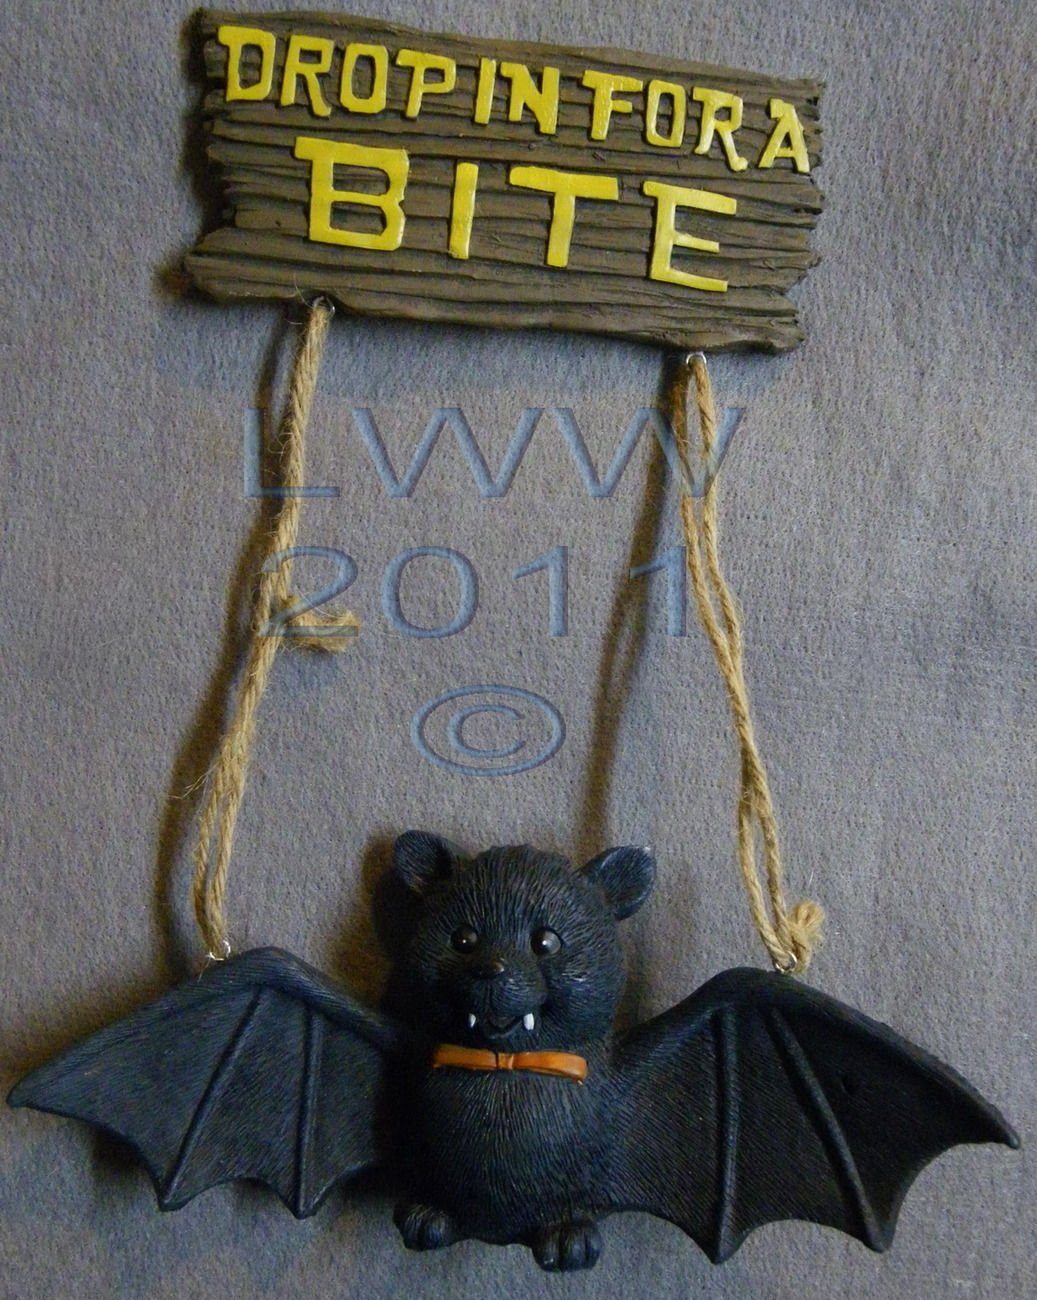 Primary image for Drop in for a Bite 3-d Vampire Bat Halloween Resin Sign